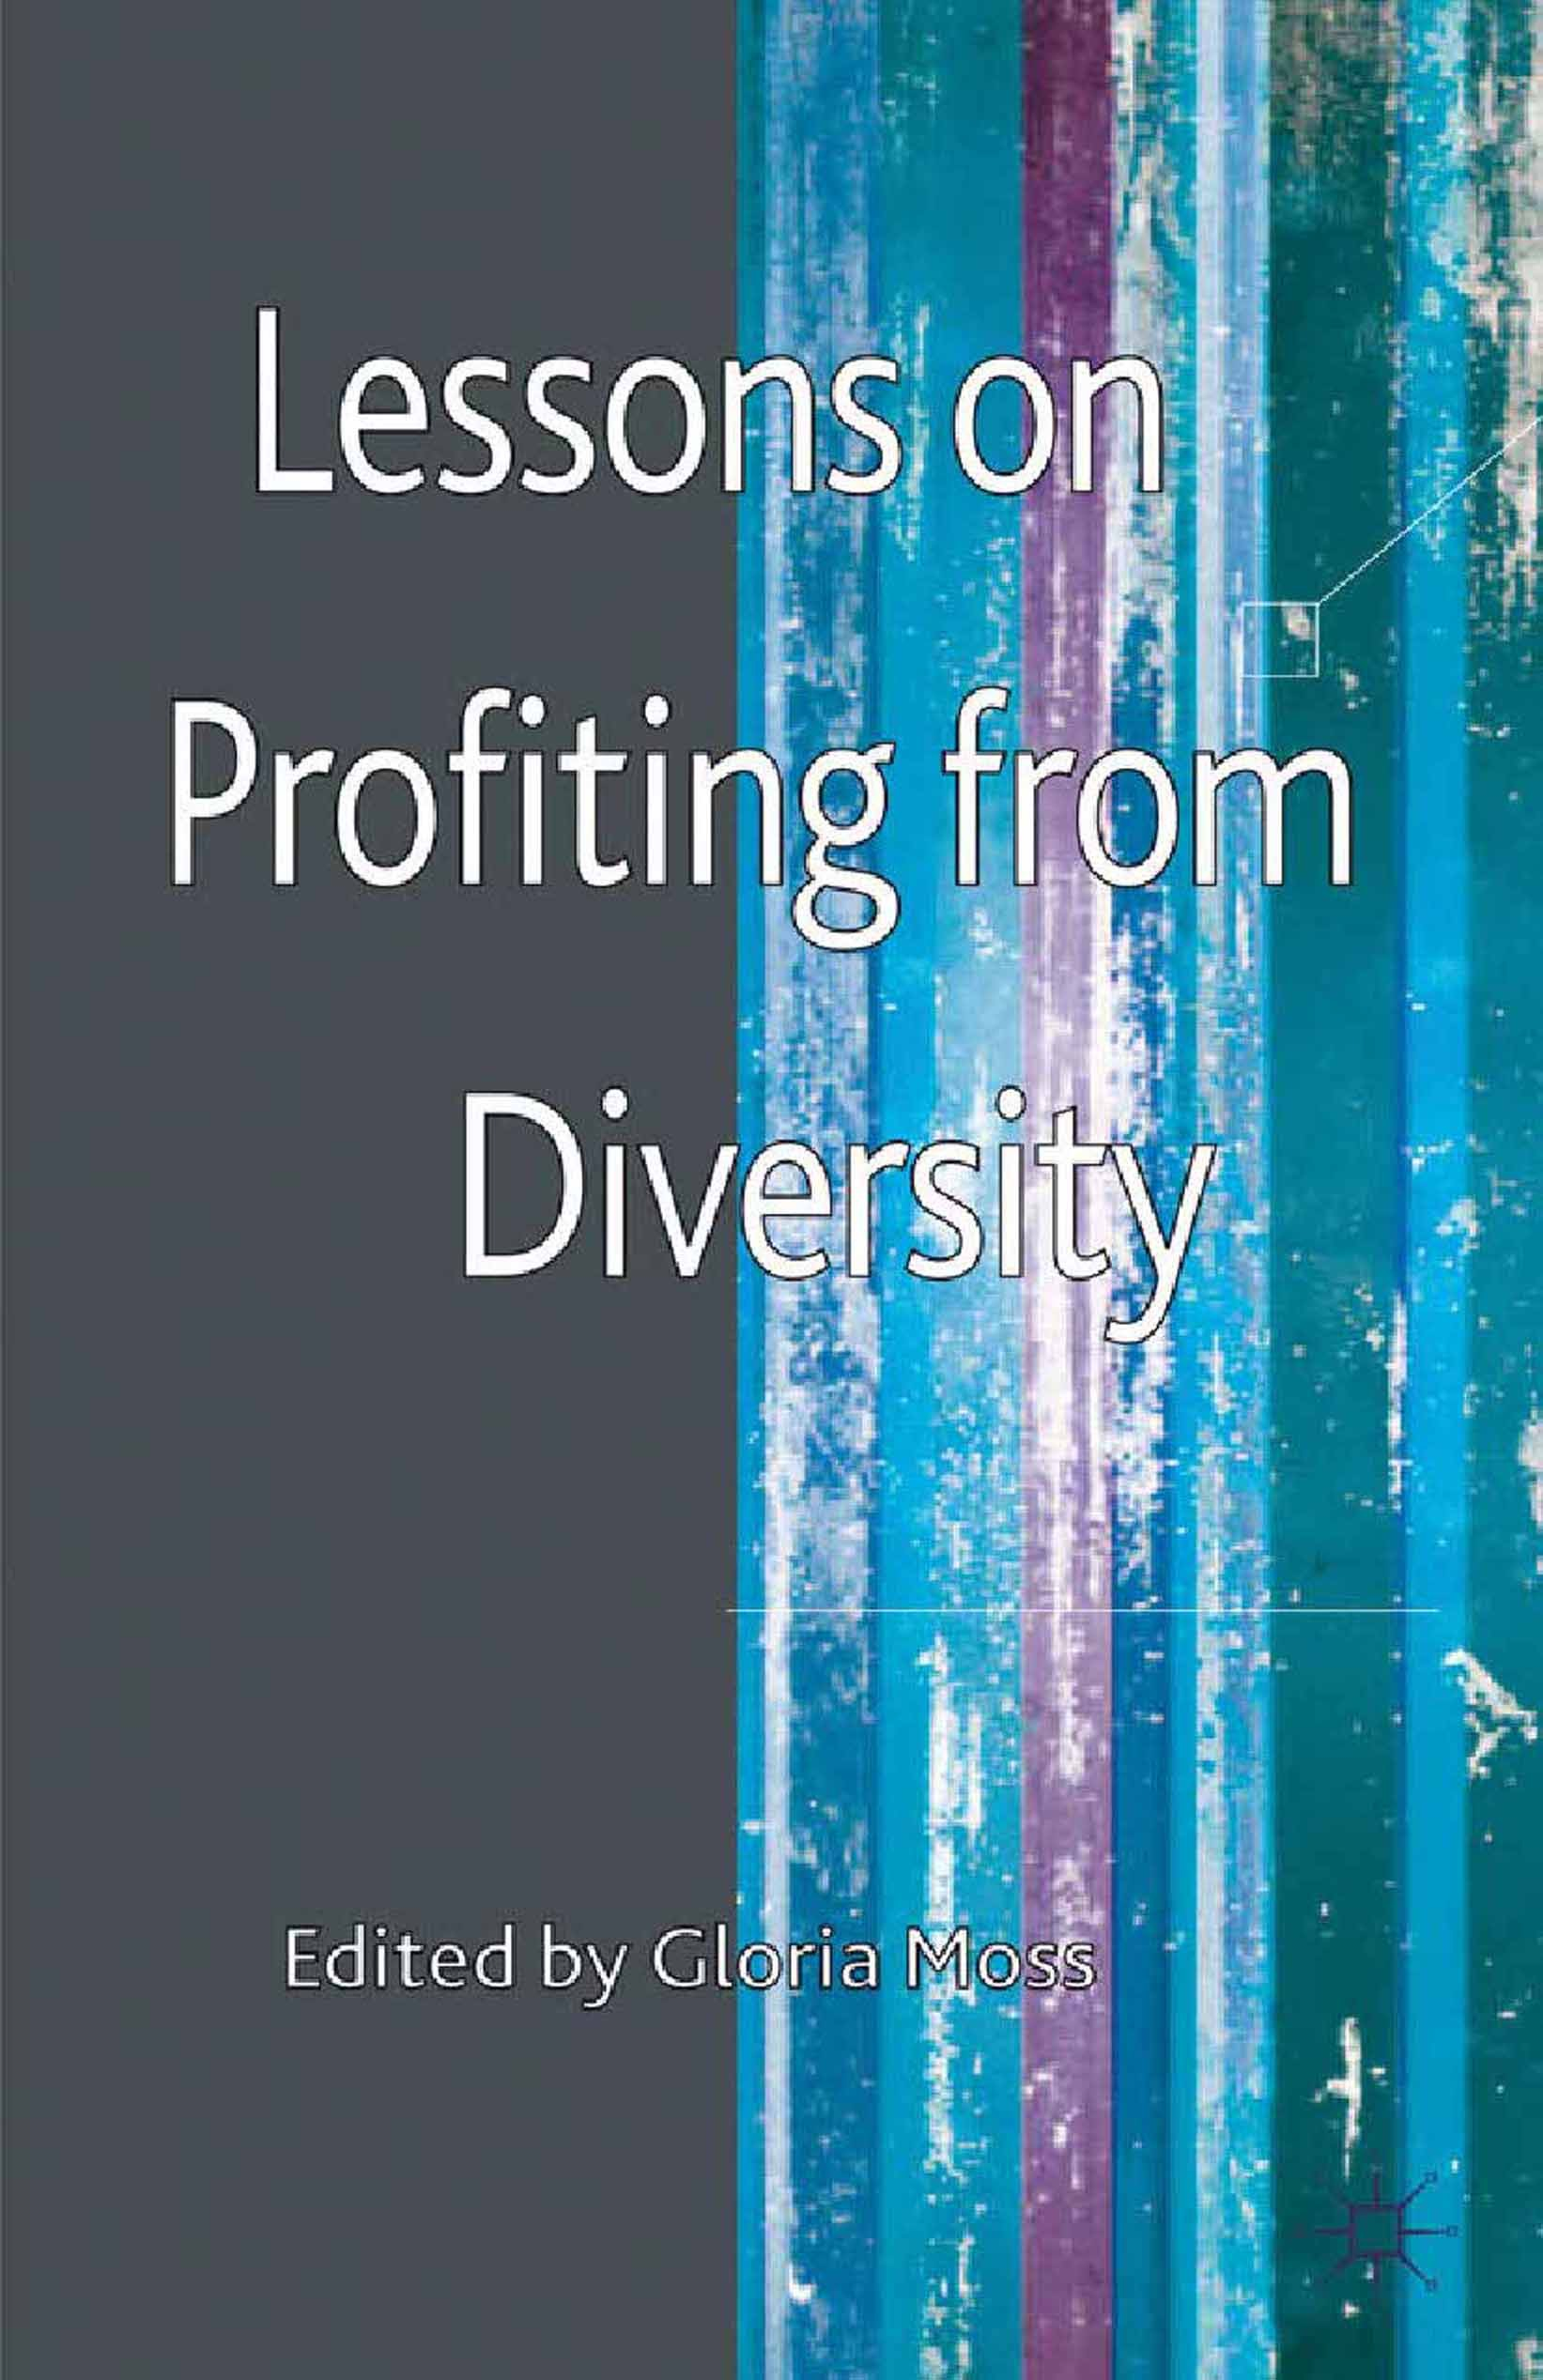 Moss, Gloria - Lessons on Profiting from Diversity, ebook